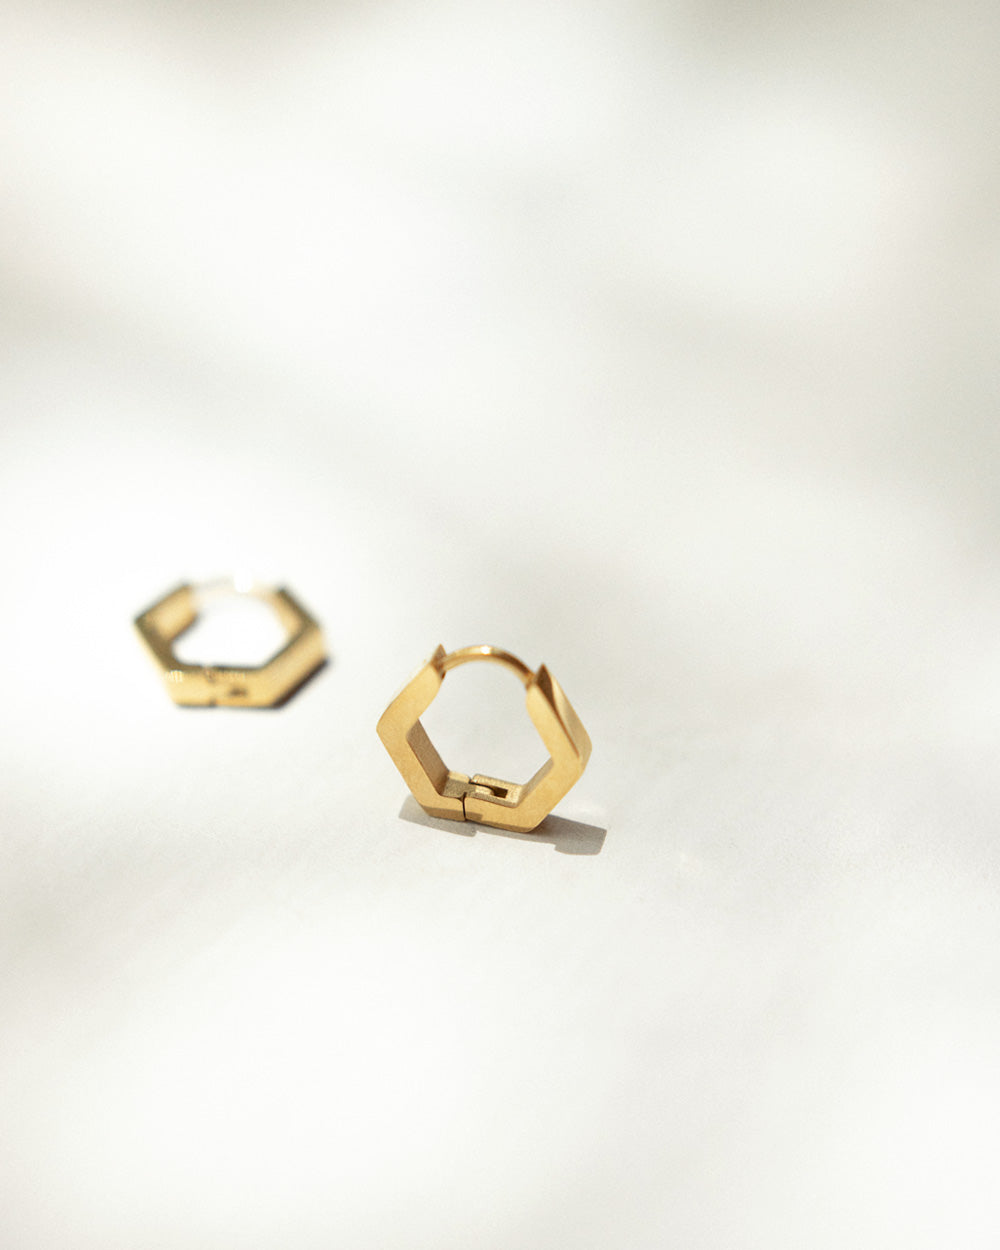 Chic hexagon shape hoop earrings for casual everyday style - The Hexad